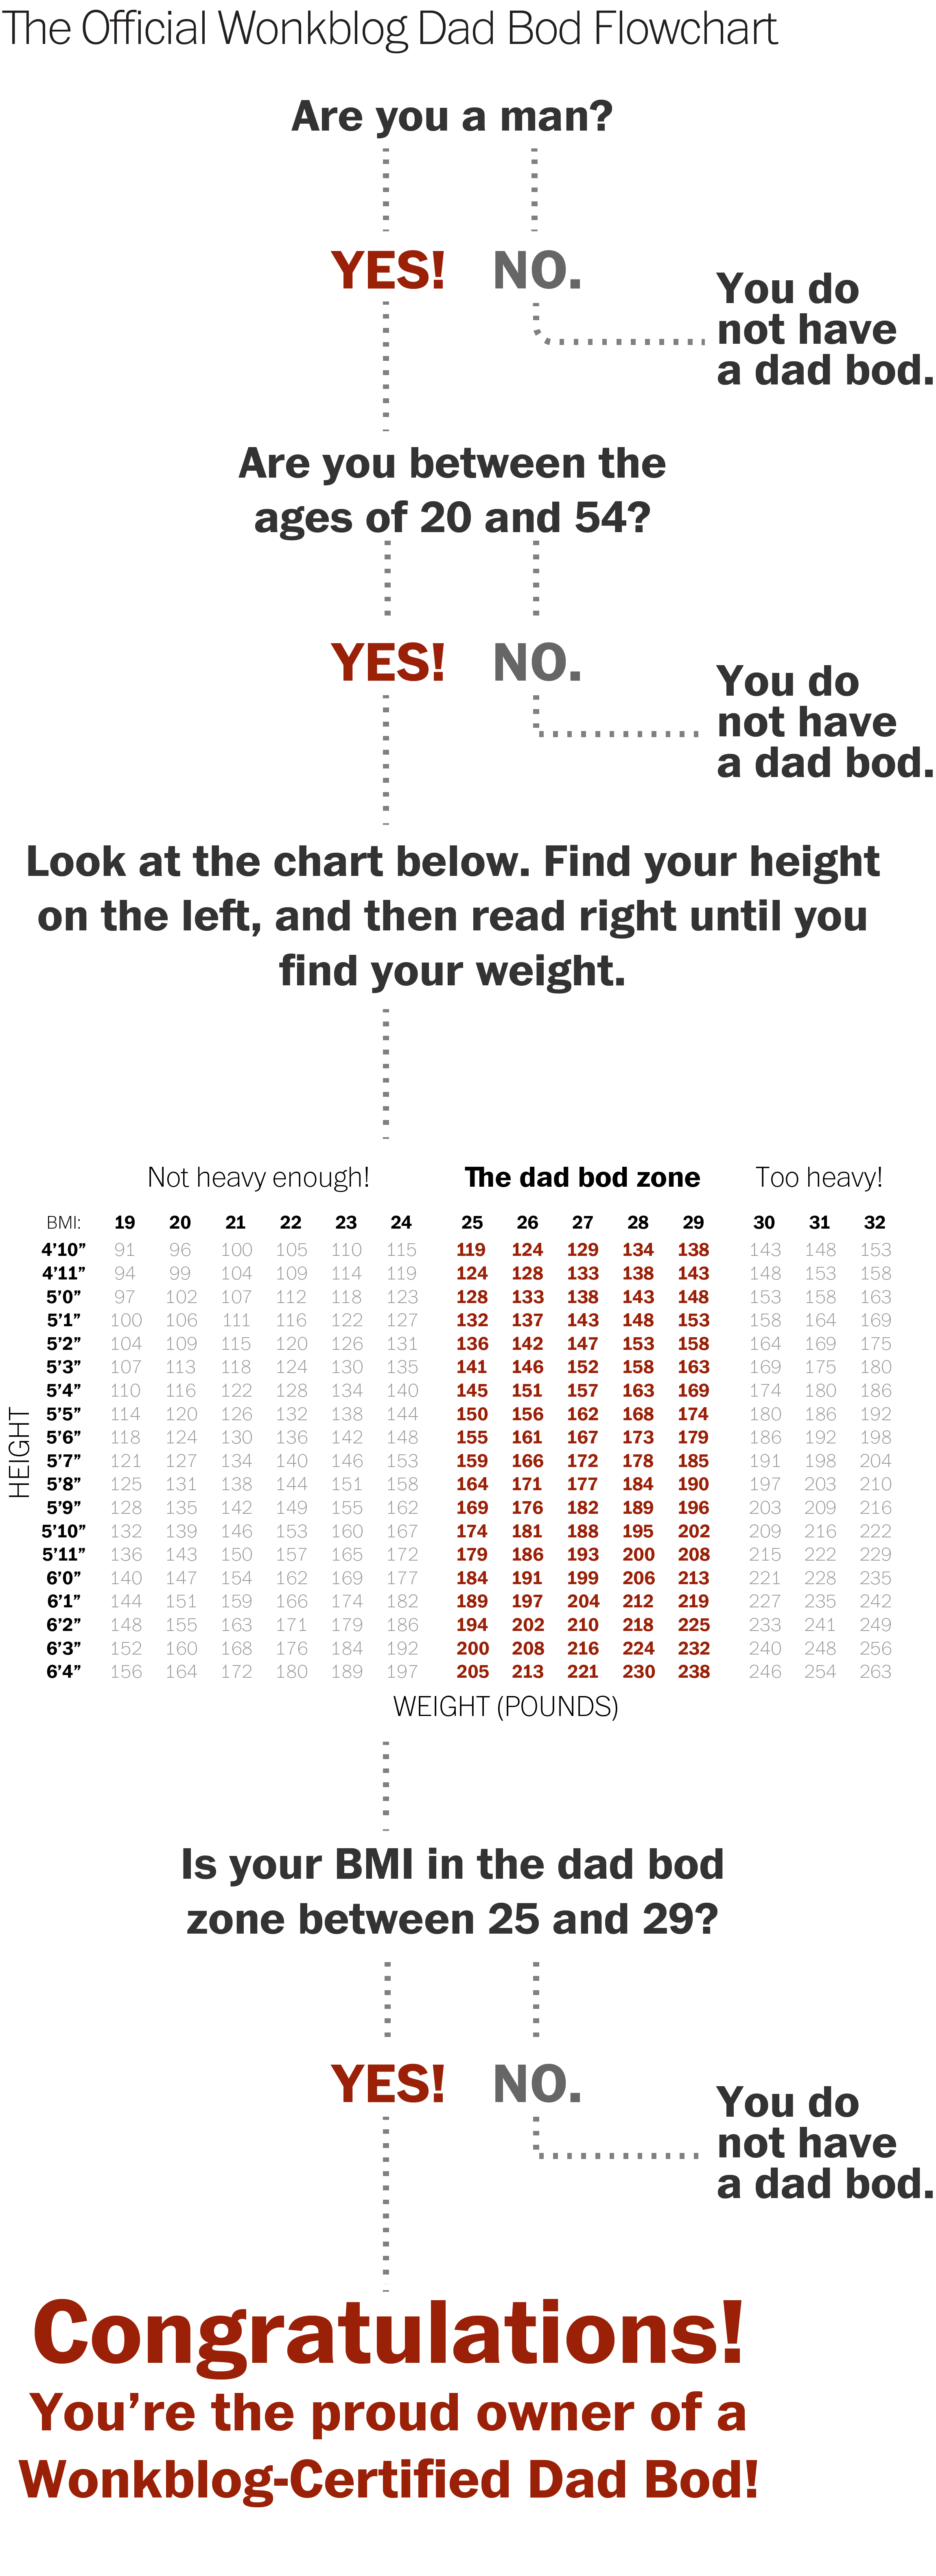 Do you have a dad bod? This flow chart will tell you - The Washington Post